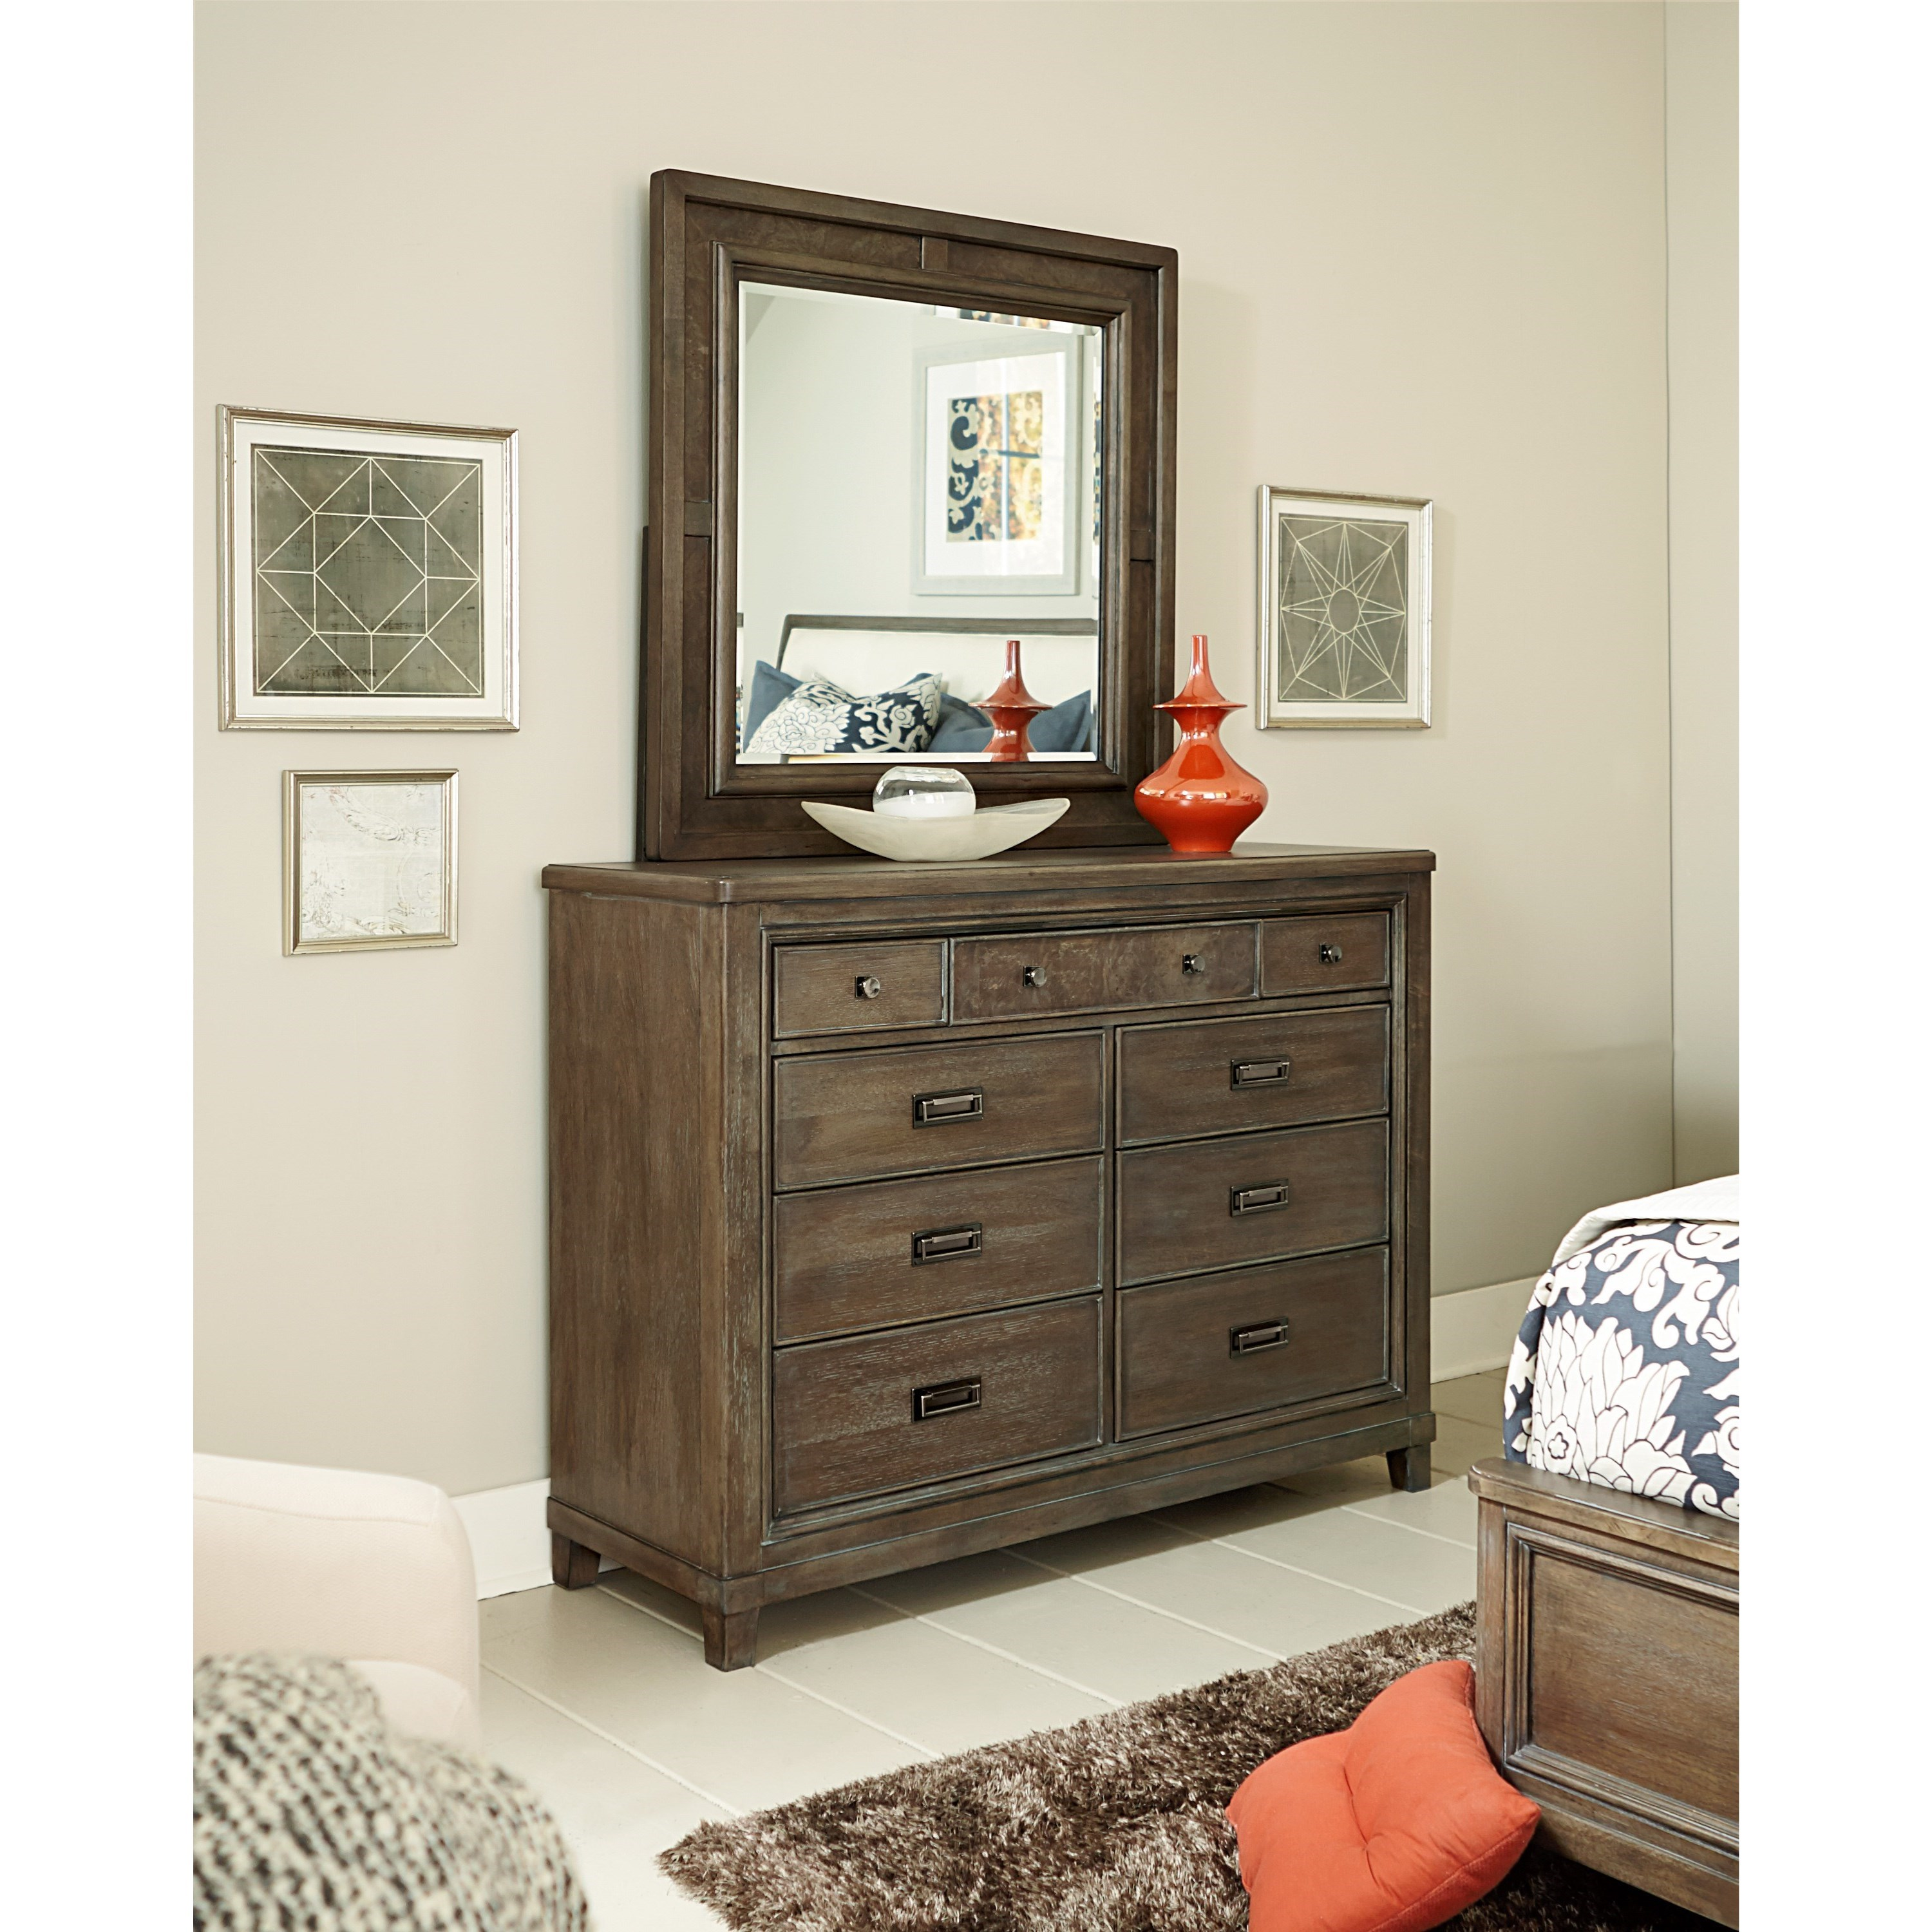 Contemporary 9 Drawer Dresser And Mirror Set, Drop Top Center Drawer With Media  Storage